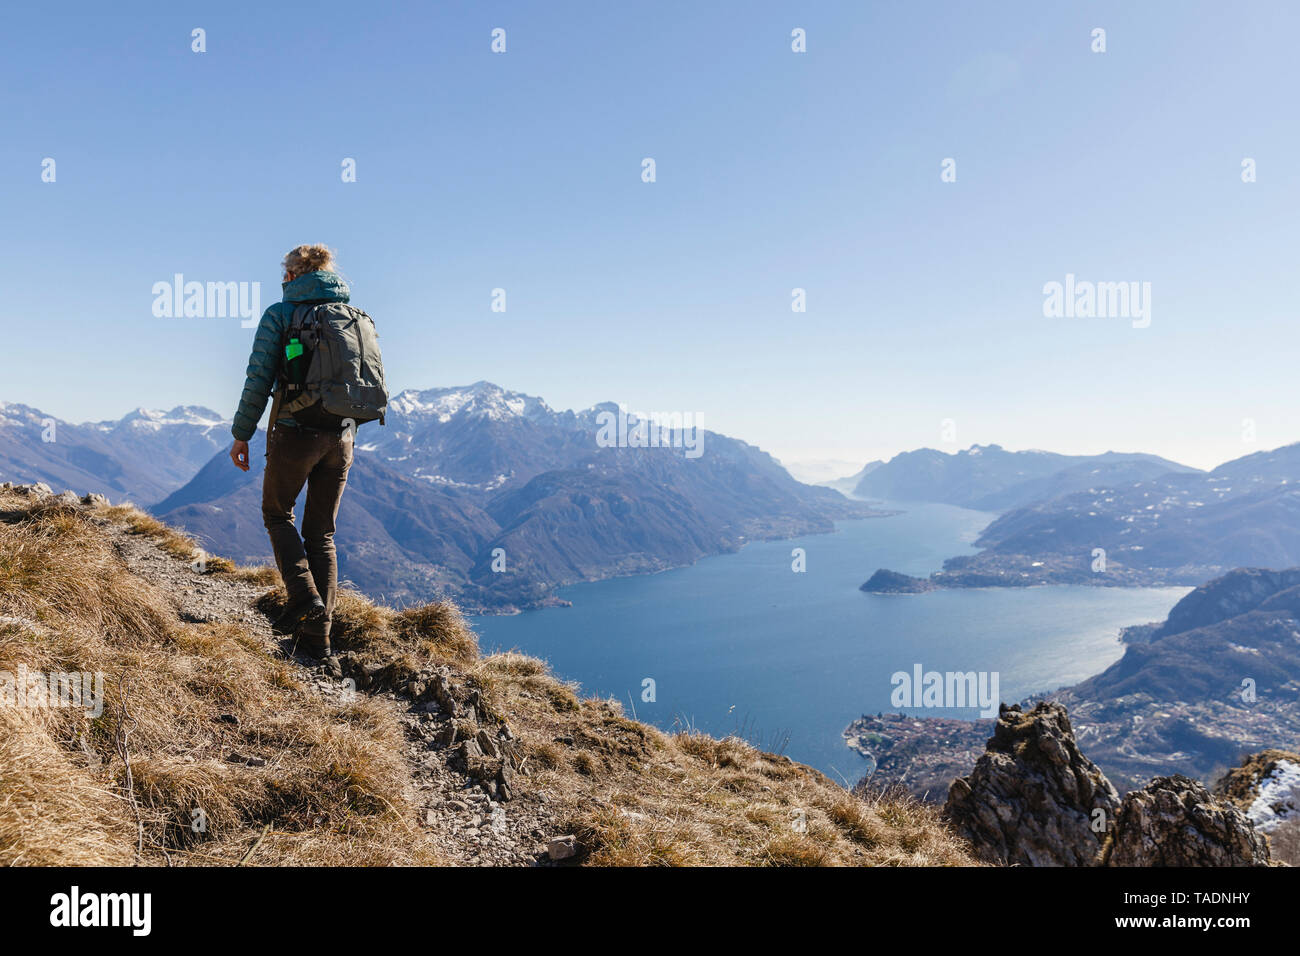 Italy, Como, woman on a hiking trip in the mountains above Lake Como - Stock Image